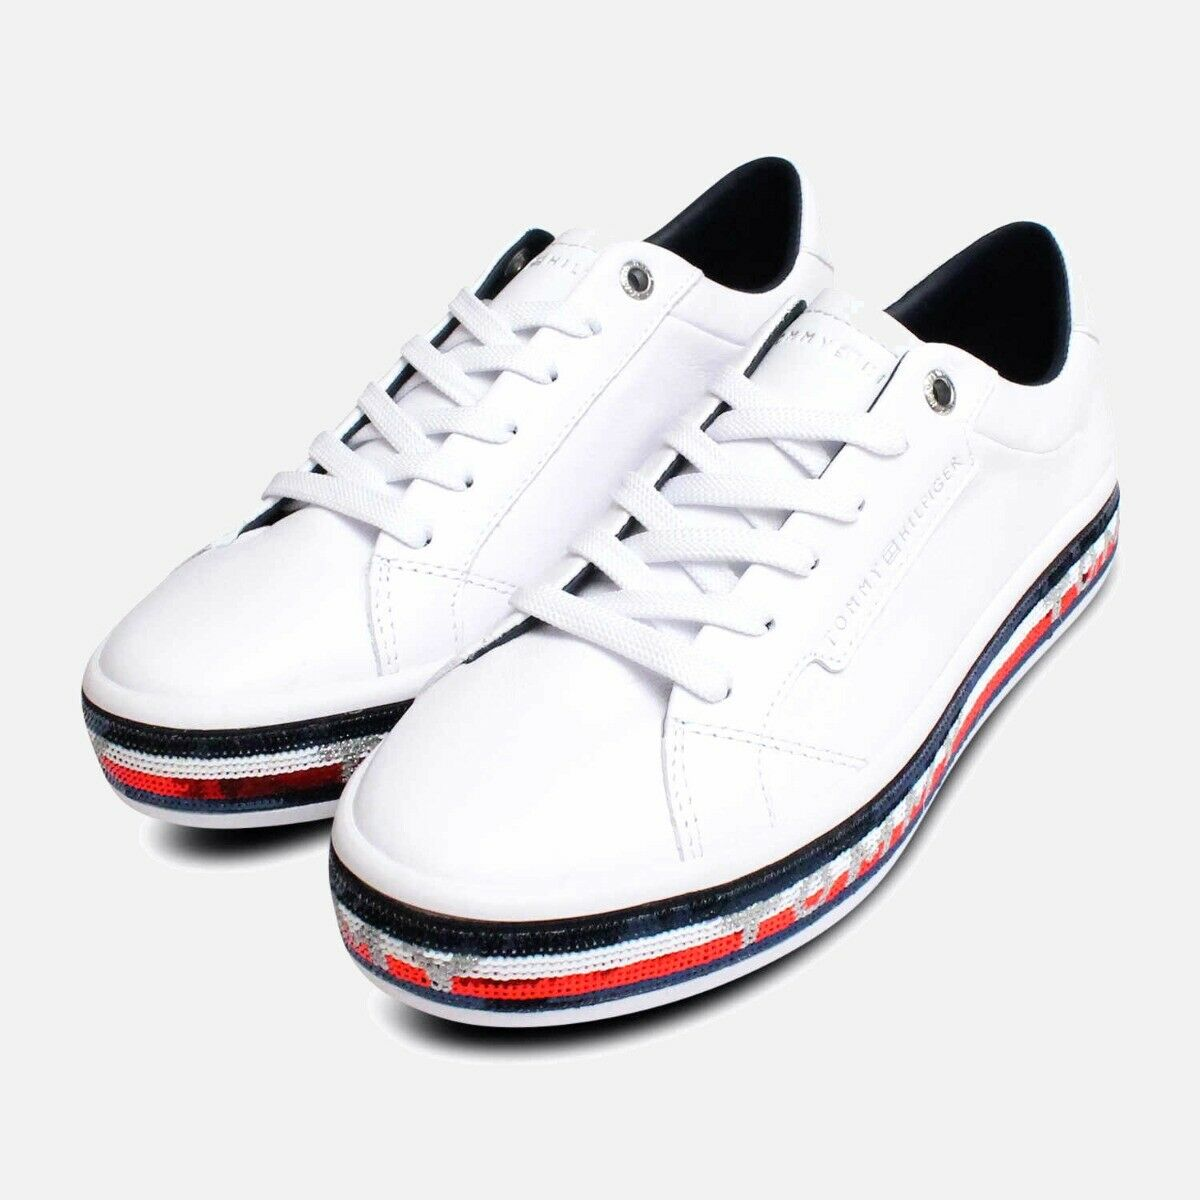 Tommy Hilfiger White Red & Blue Sequin Leather Sneakers